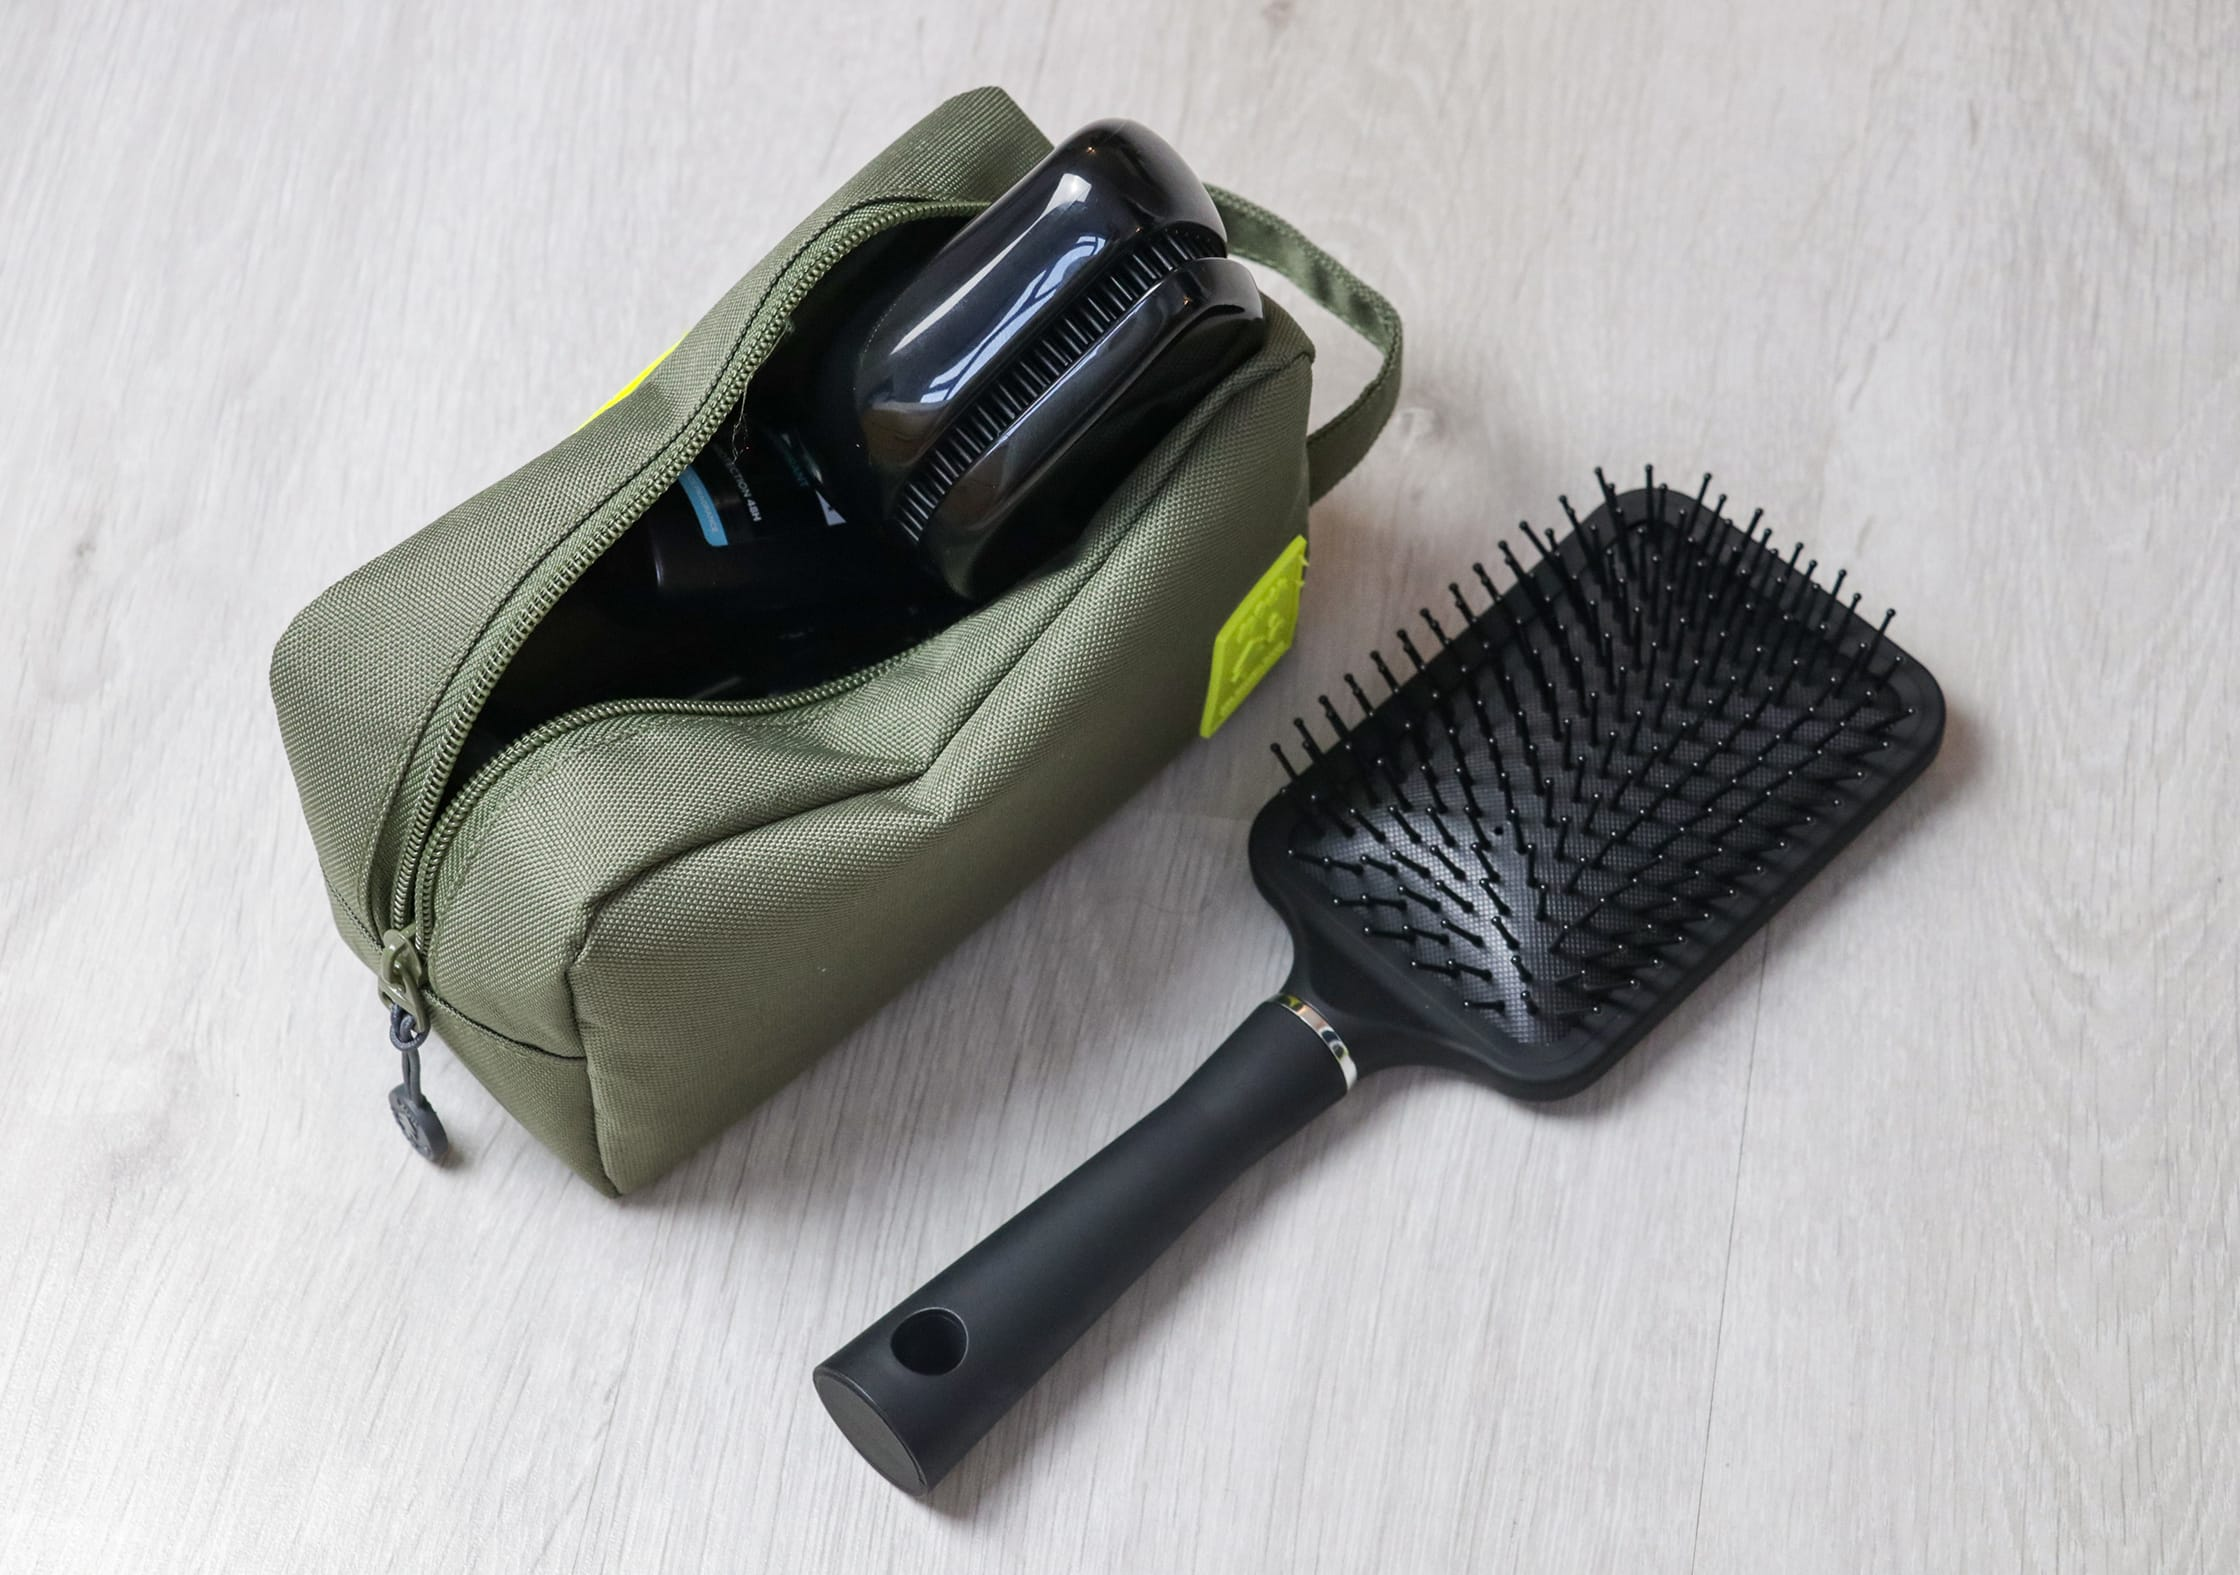 Tangle Teezer Compact Styler In A Dopp Kit